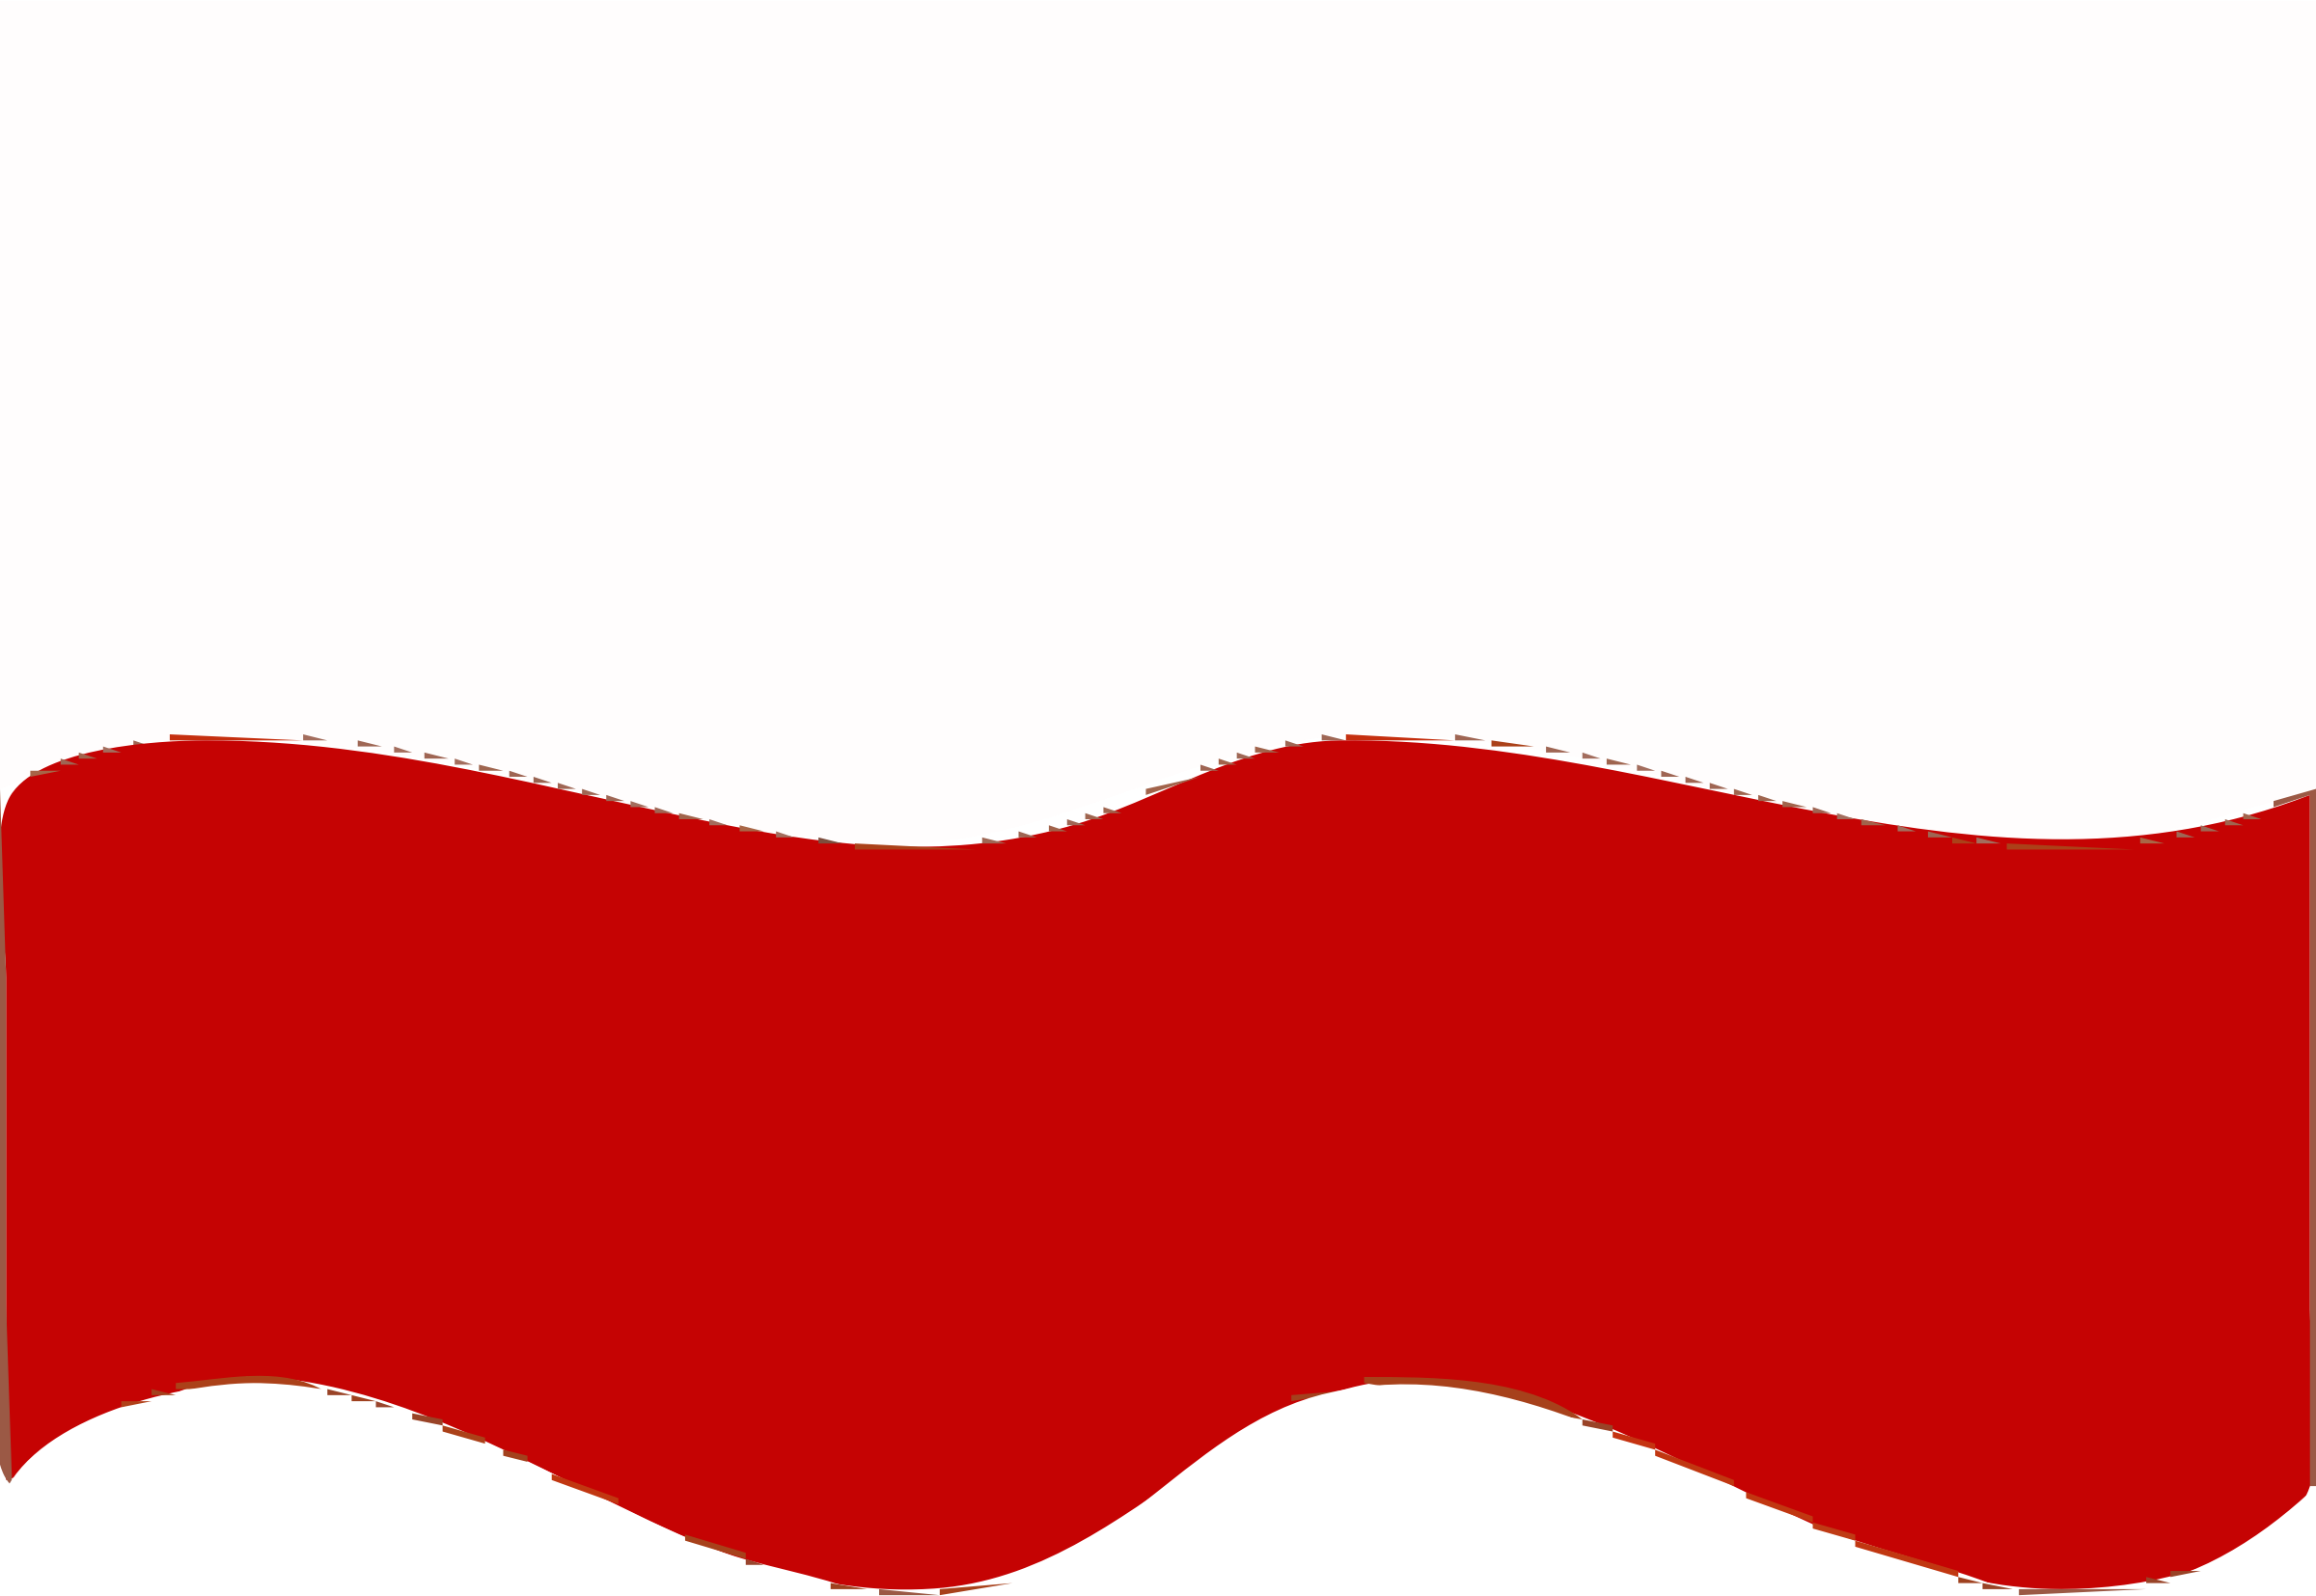 Flag of Poland wave by Joesph